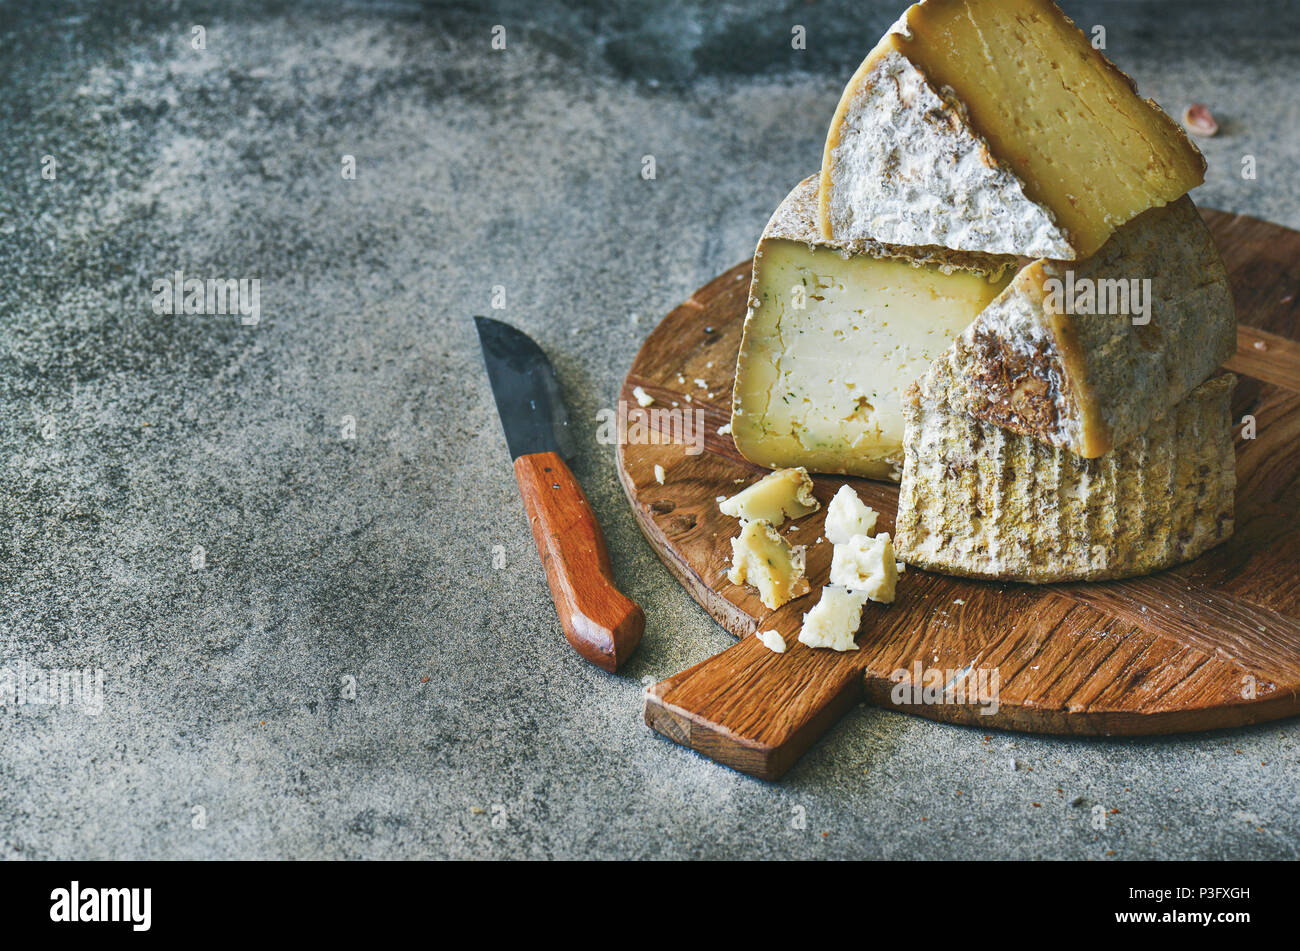 Cheese assortment on wooden board, copy space Stock Photo